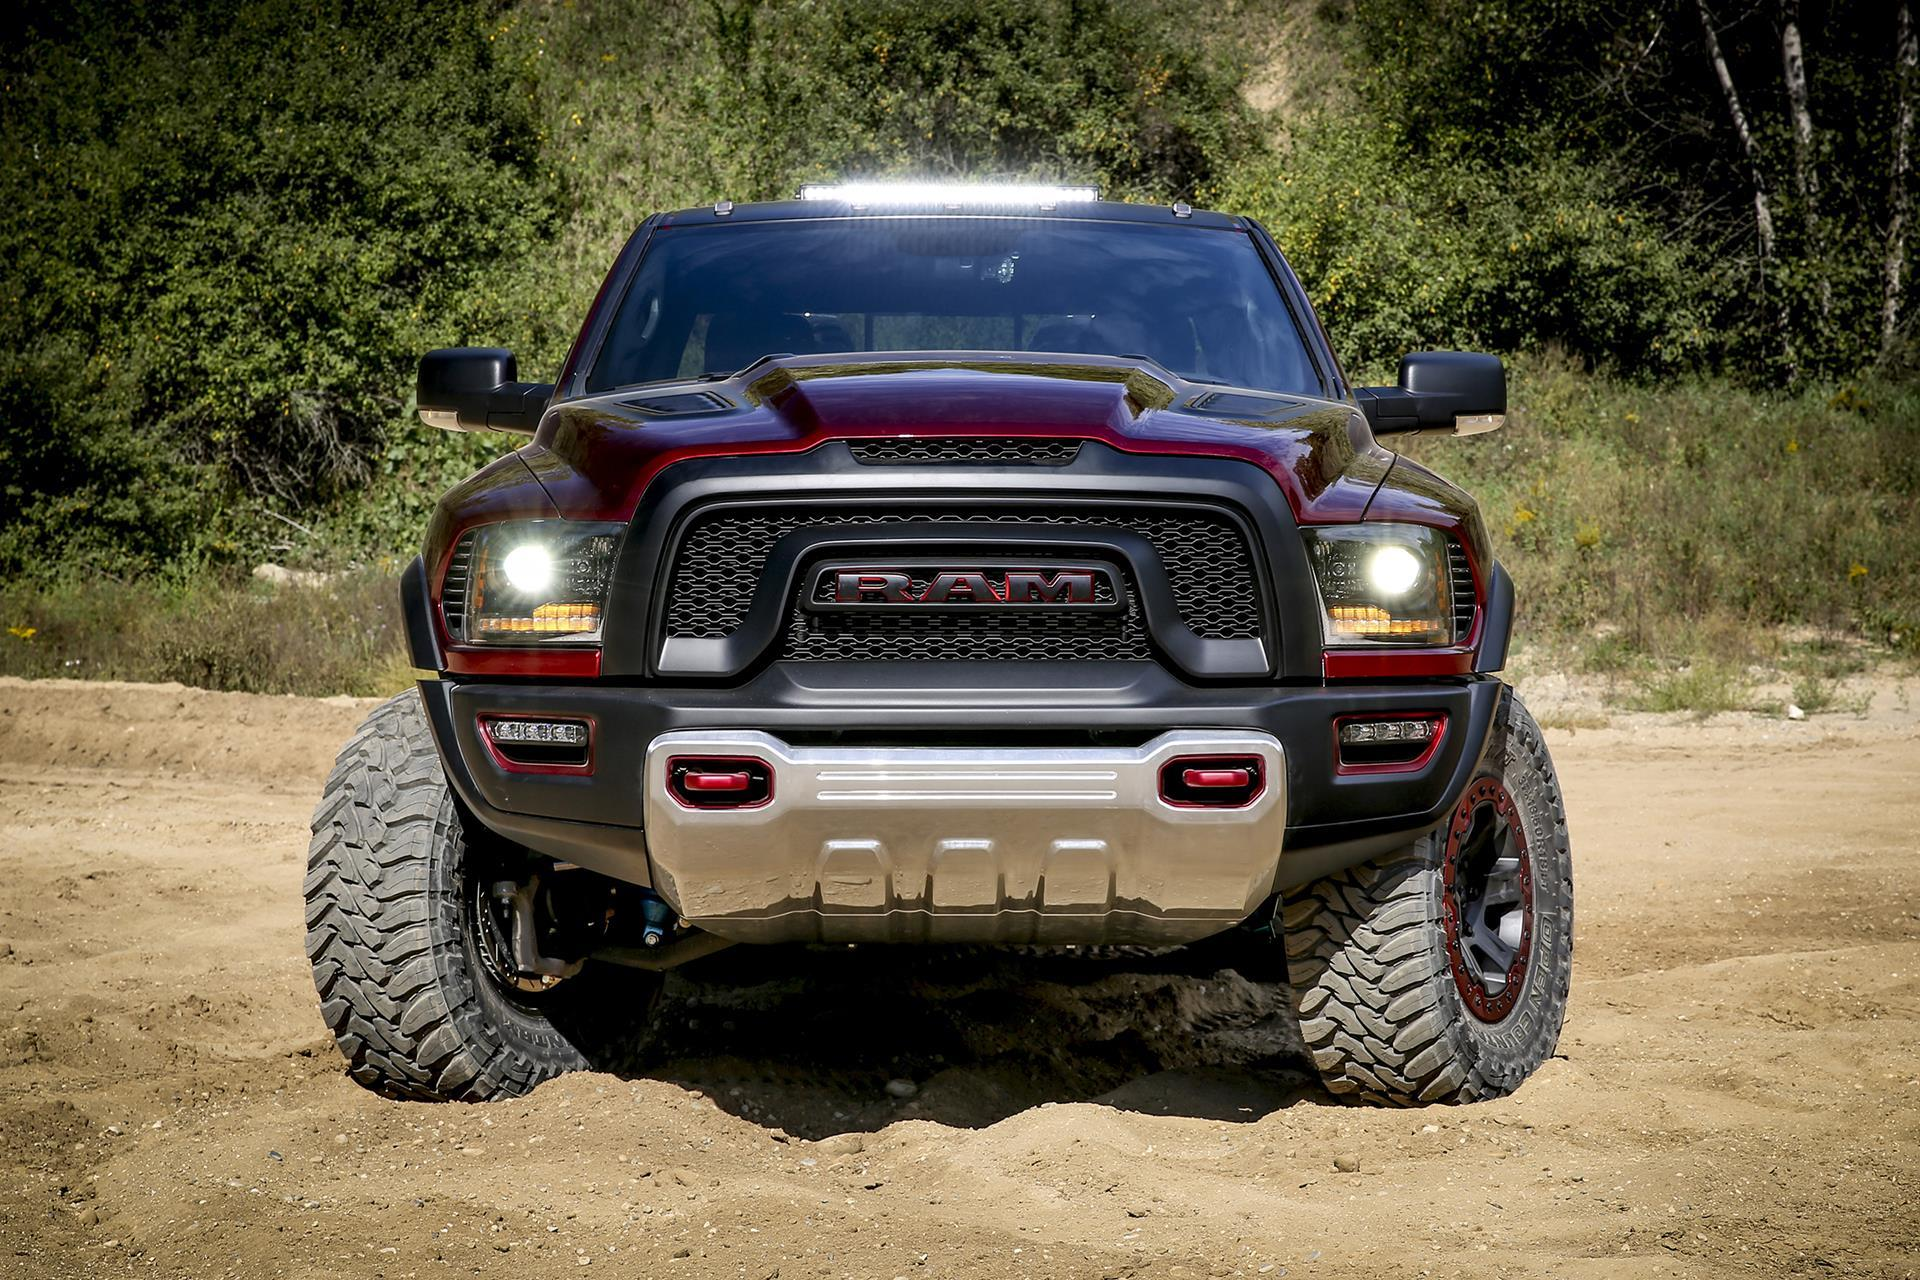 2017 Ram Rebel Trx Price >> 2016 Ram Rebel Trx Concept News And Information Research